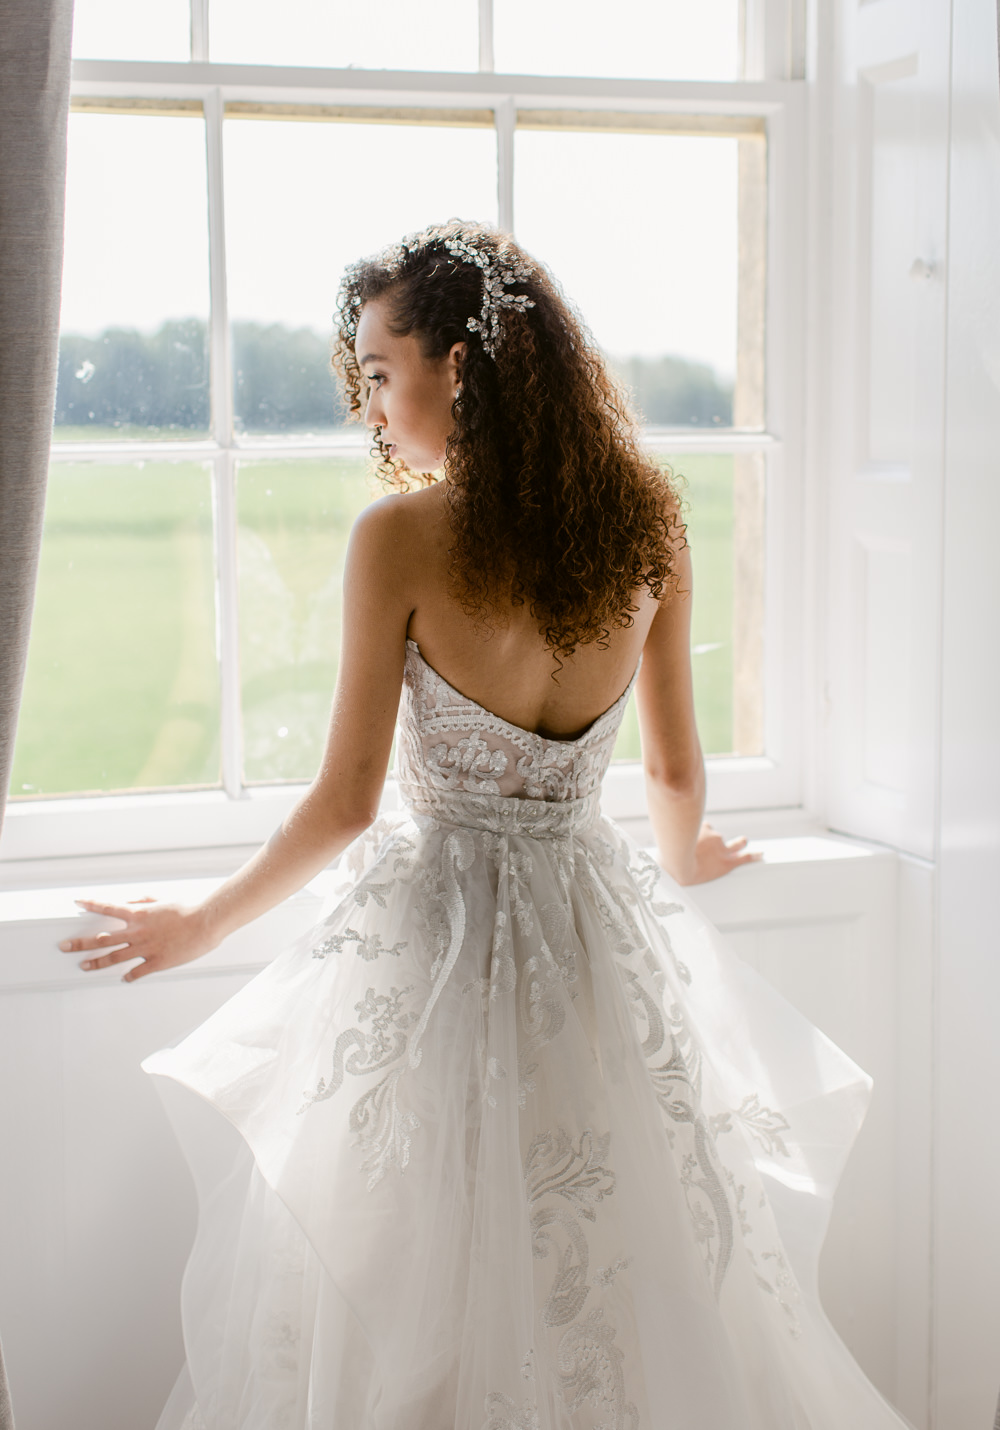 Dress Gown Bride Bridal Bride Bridal Hair Make Up Tulle Layers Sweetheart Strapless Stately Home Wedding Whitney Lloyd Photography